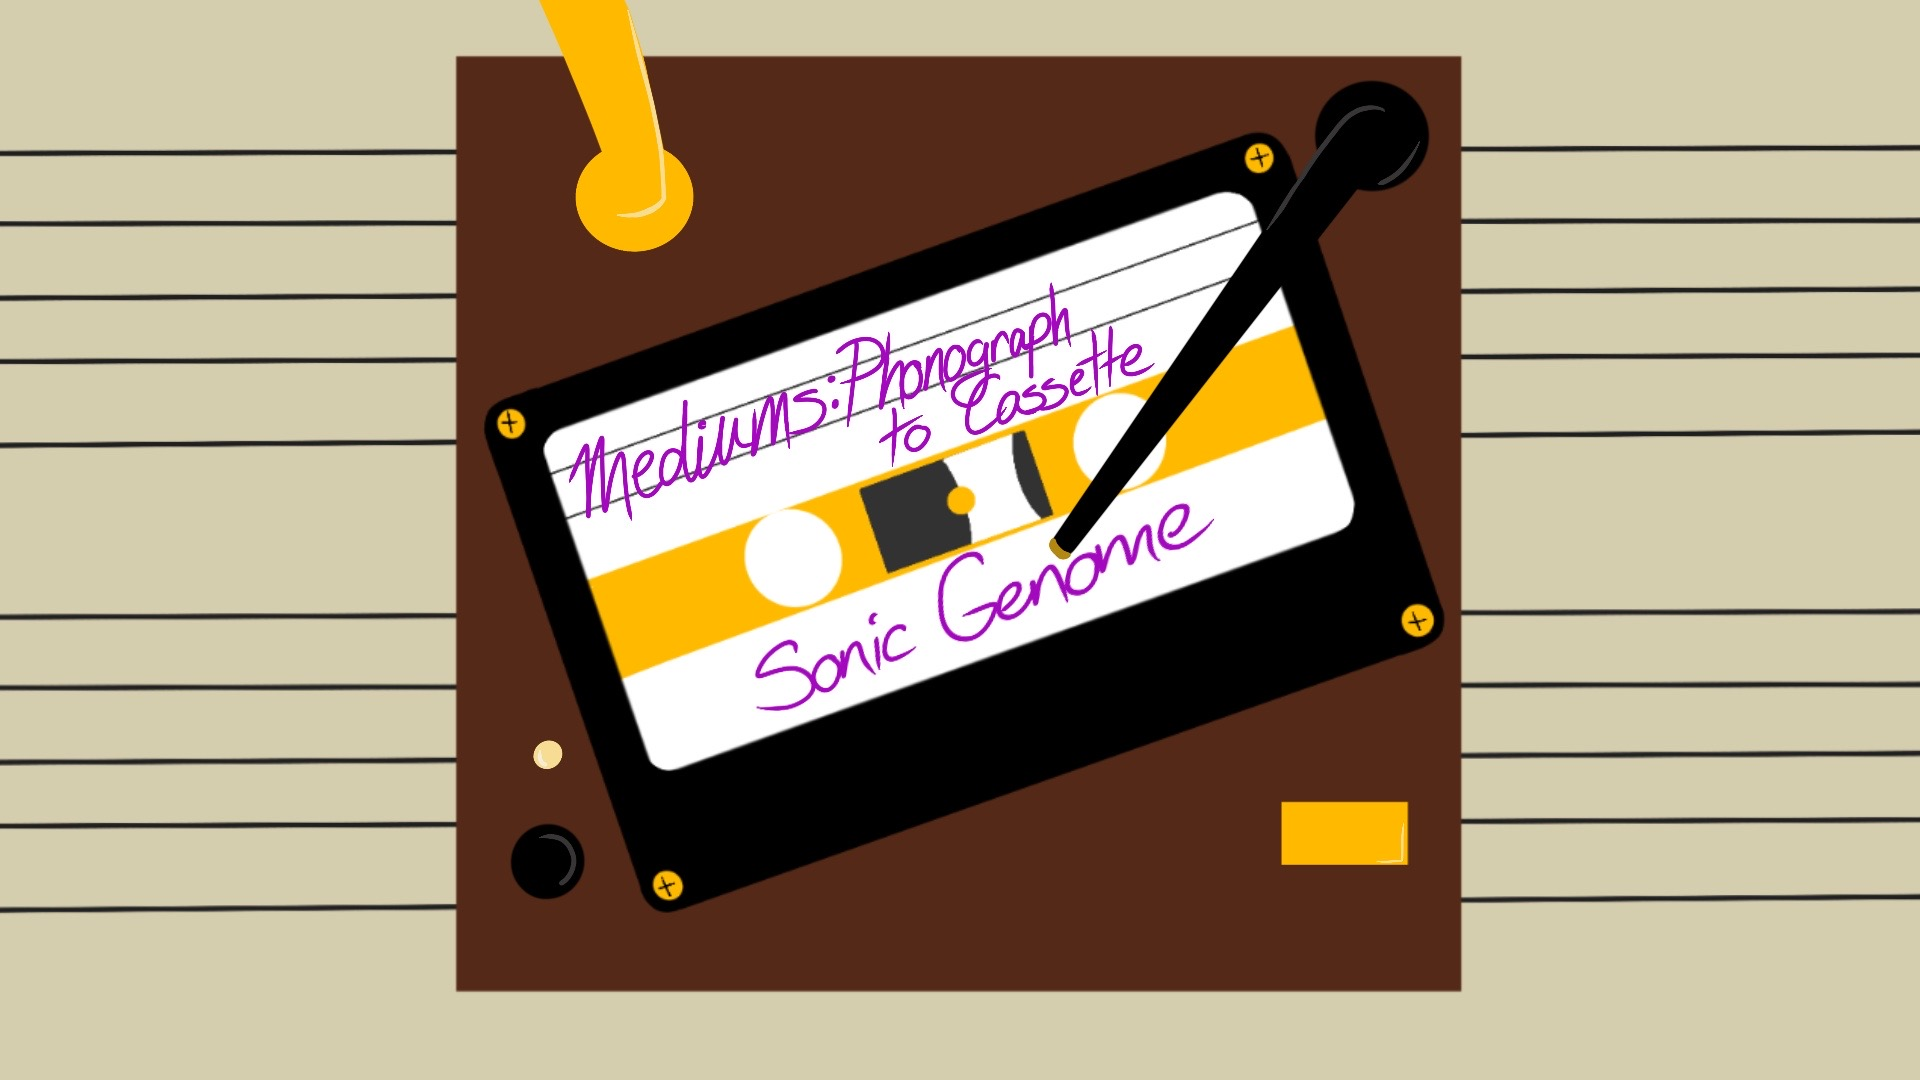 Sonic Genome: Mediums: Phonograph to Cassette